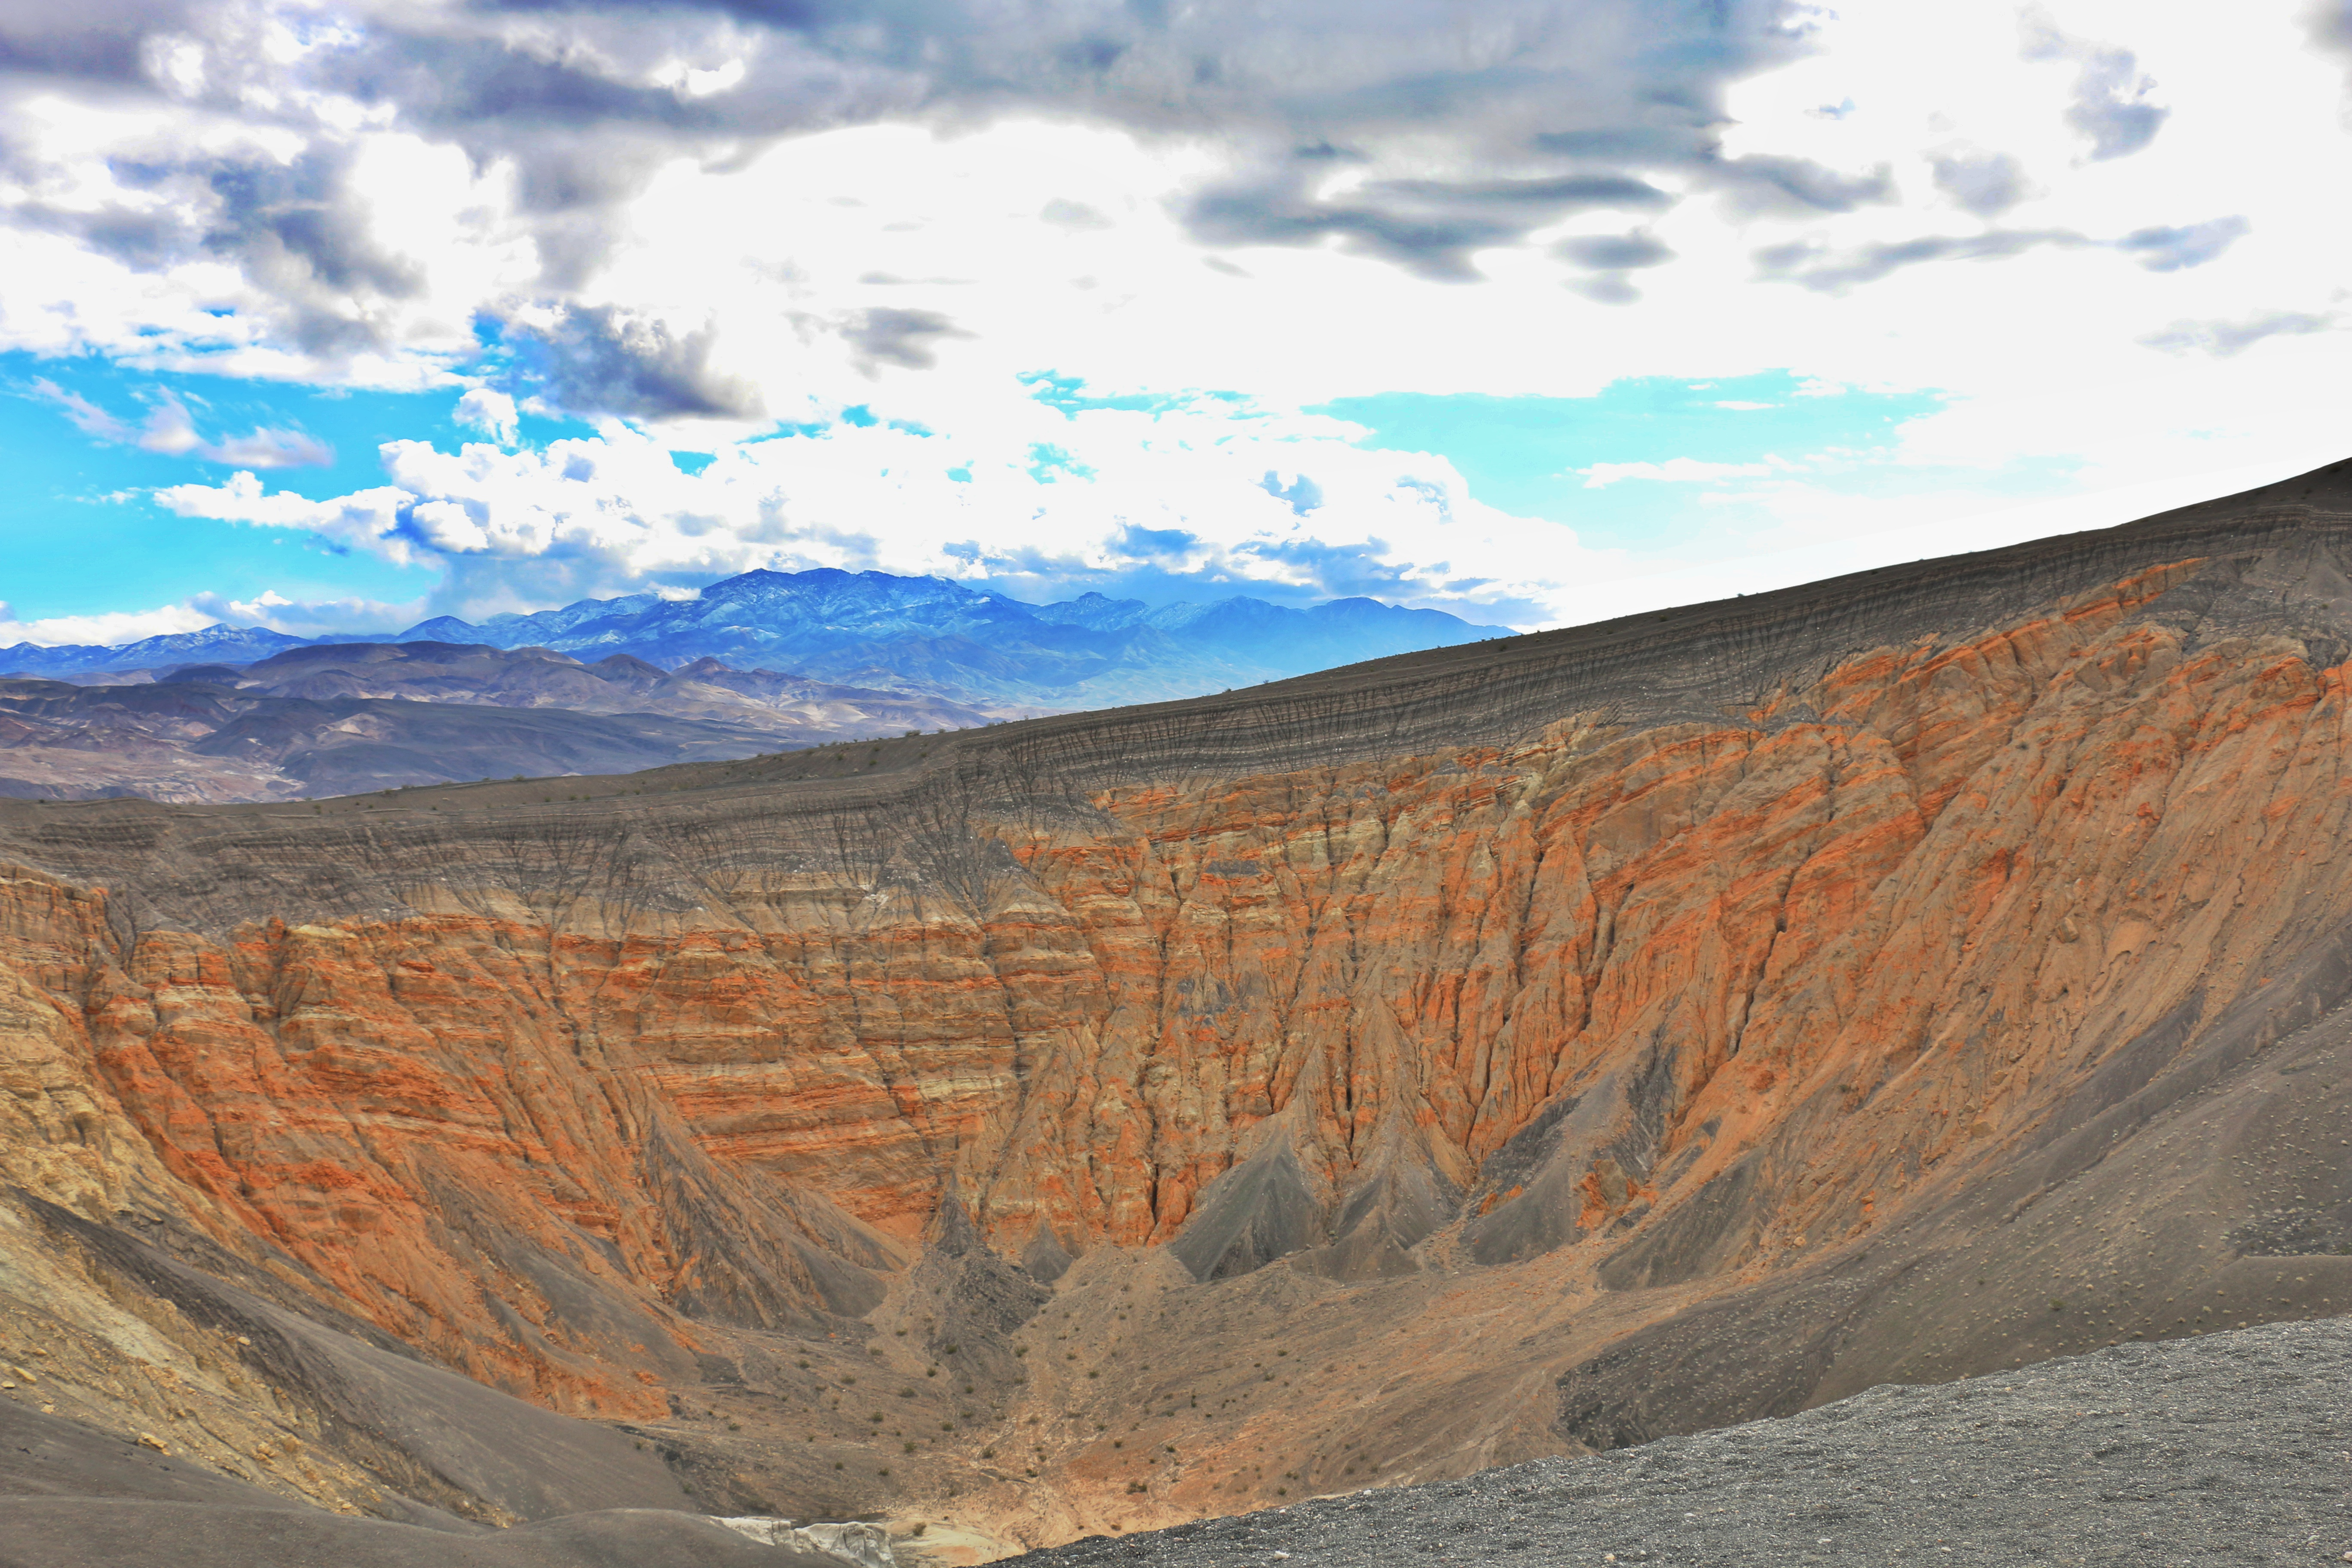 Day 10- Ubehebe Crater